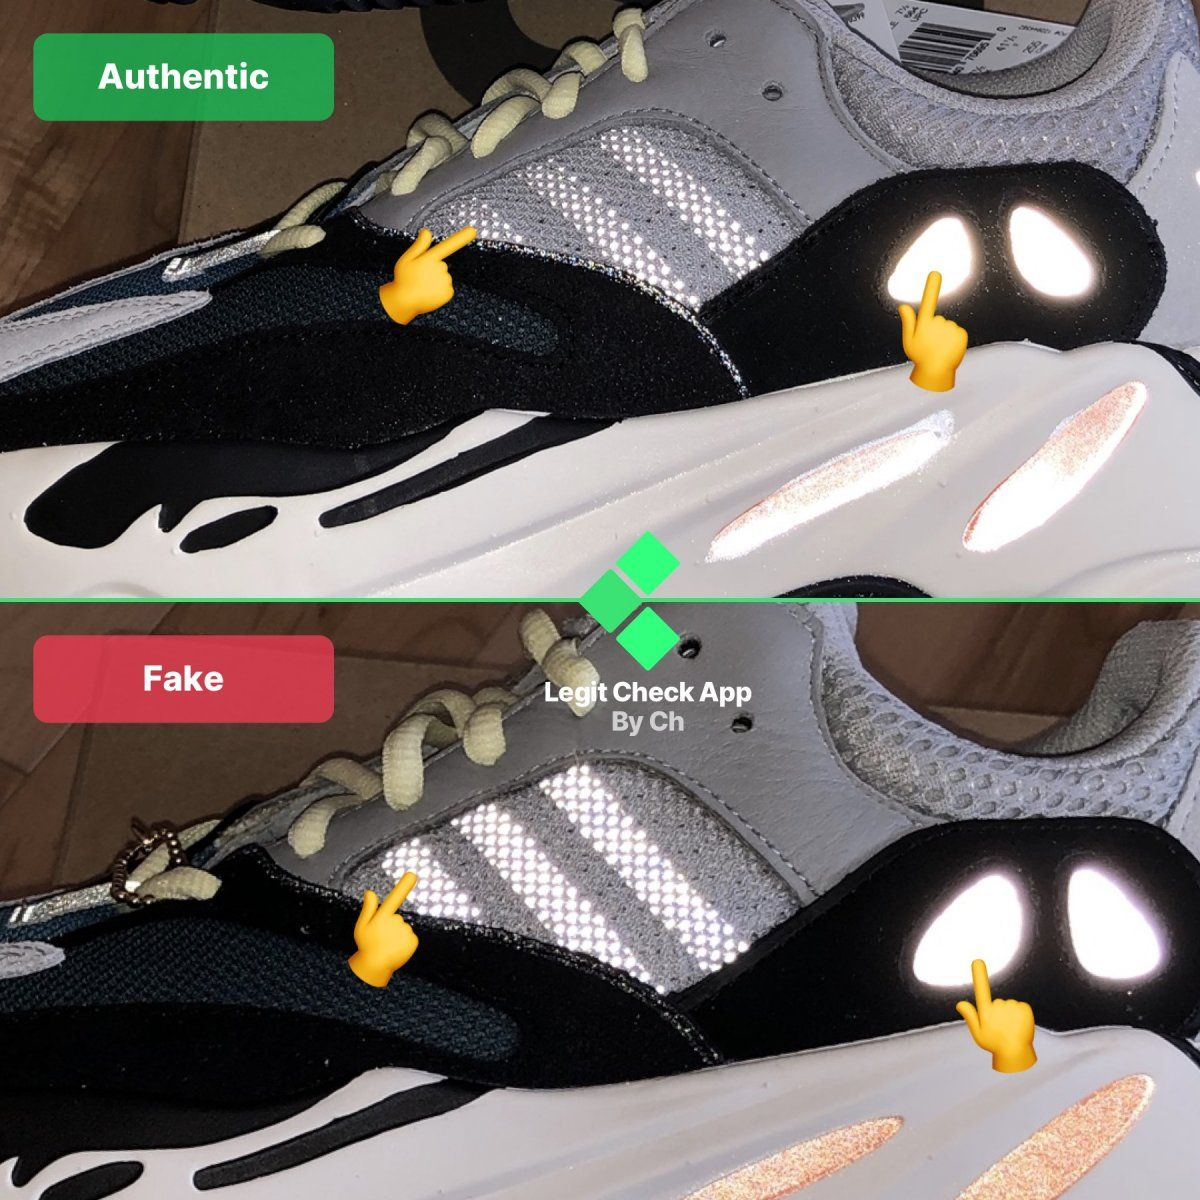 Pin on Yeezy Boost 700 V1 Fake Vs Real Guide